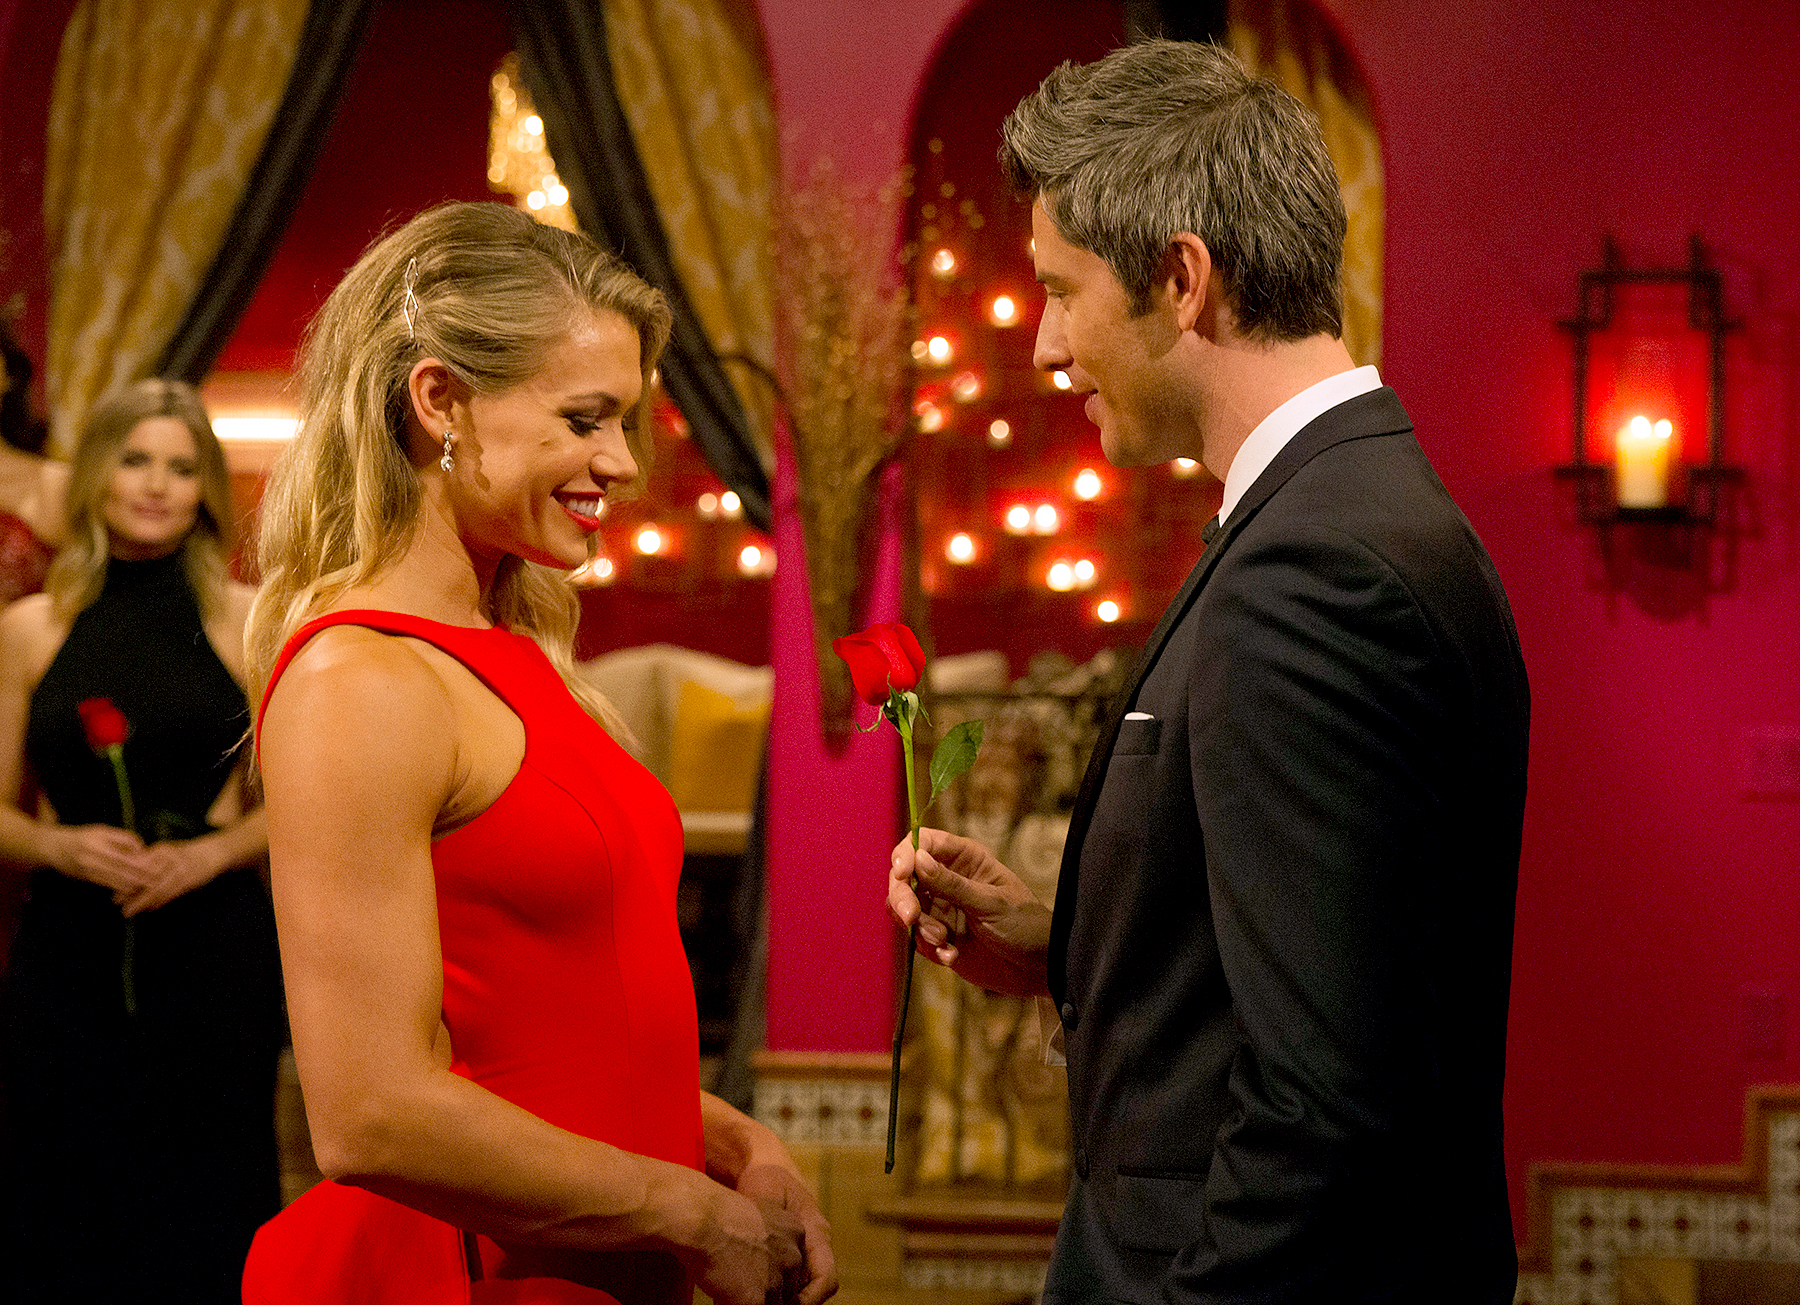 Arie Luyendyuk and Krystal Neilson in The Bachelor